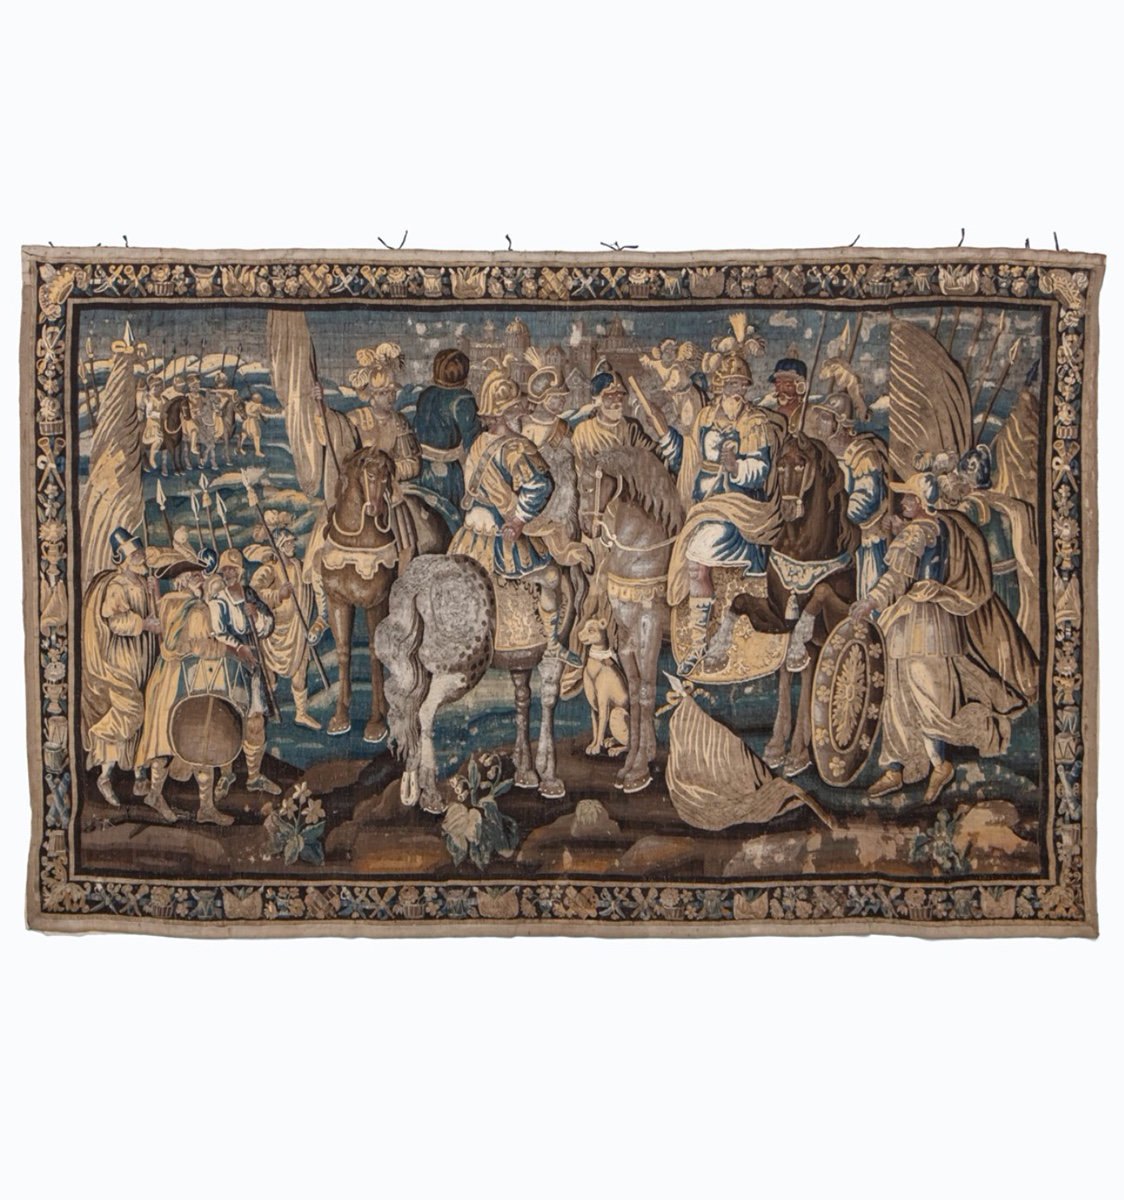 A Louis XIV historical tapestry. Aubusson, late 17th century